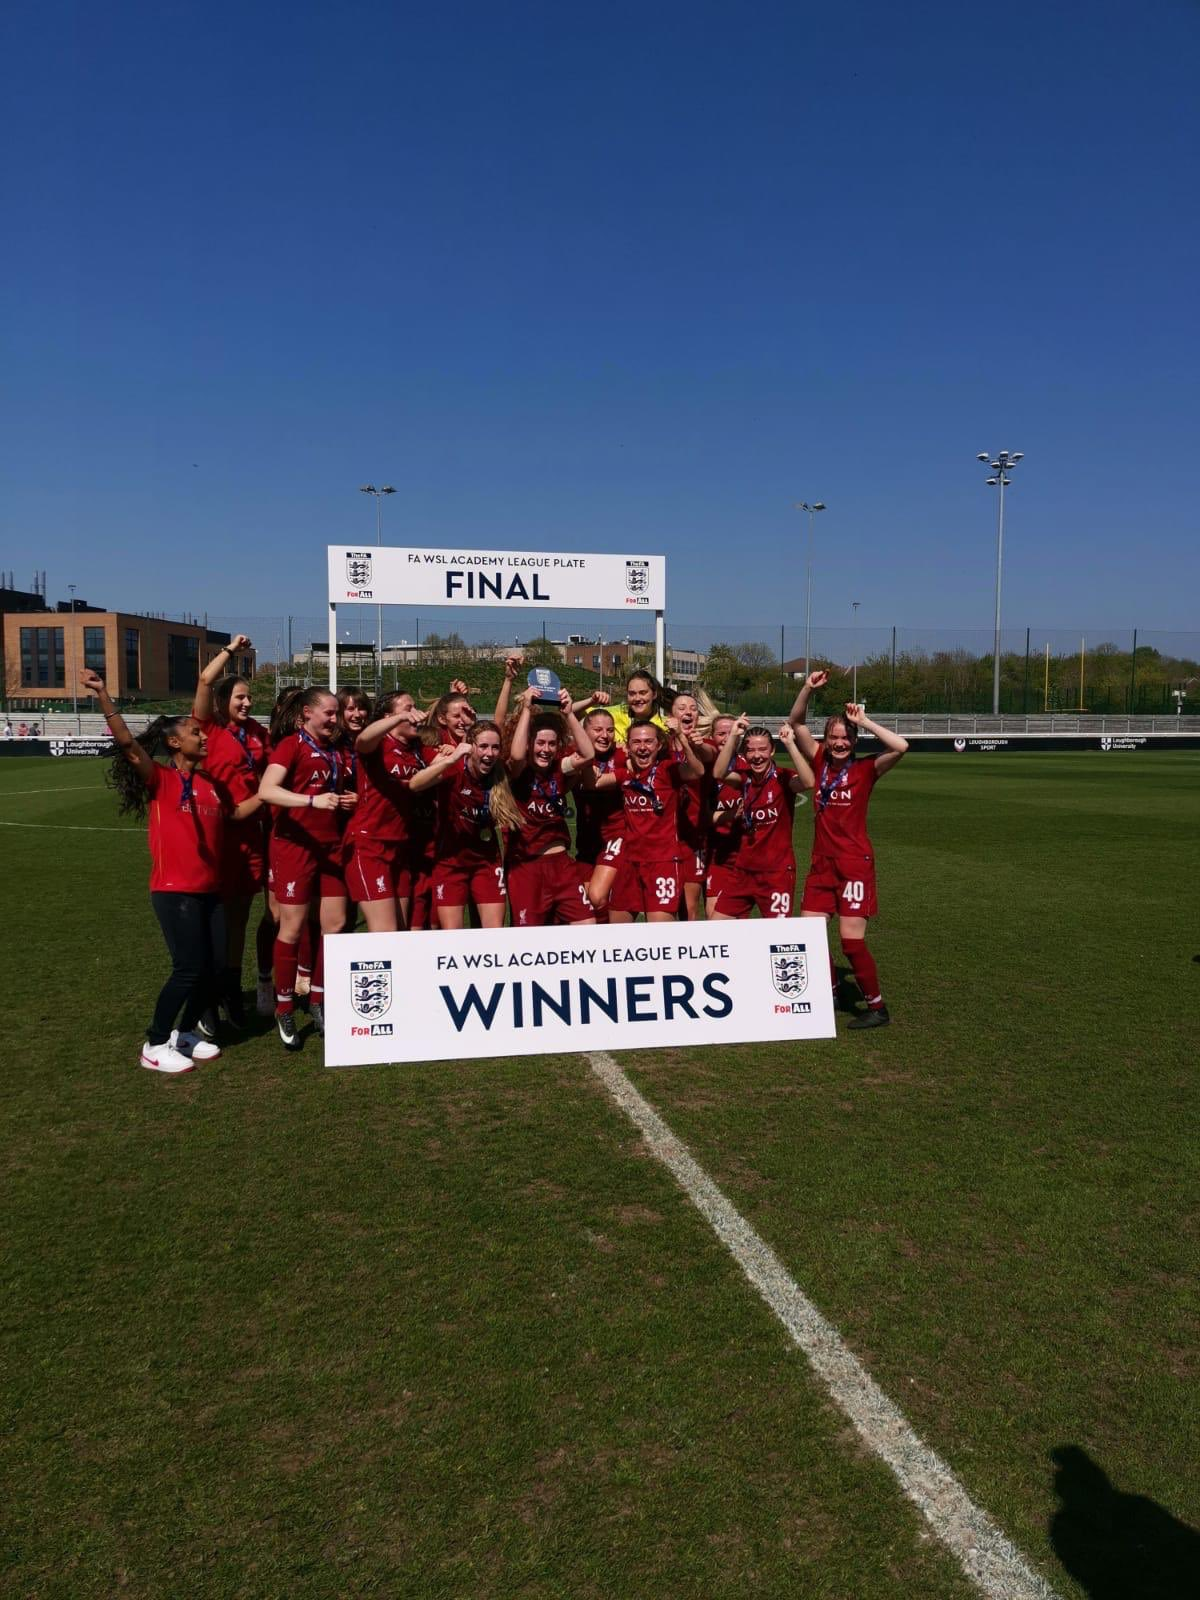 A win for our #LFCWomen Academy today as well!  The Reds completed their league & plate double, defeating @bristolcitywfc 2-1 in the final 🏆🏆🔴 https://t.co/5TewDv7hf4